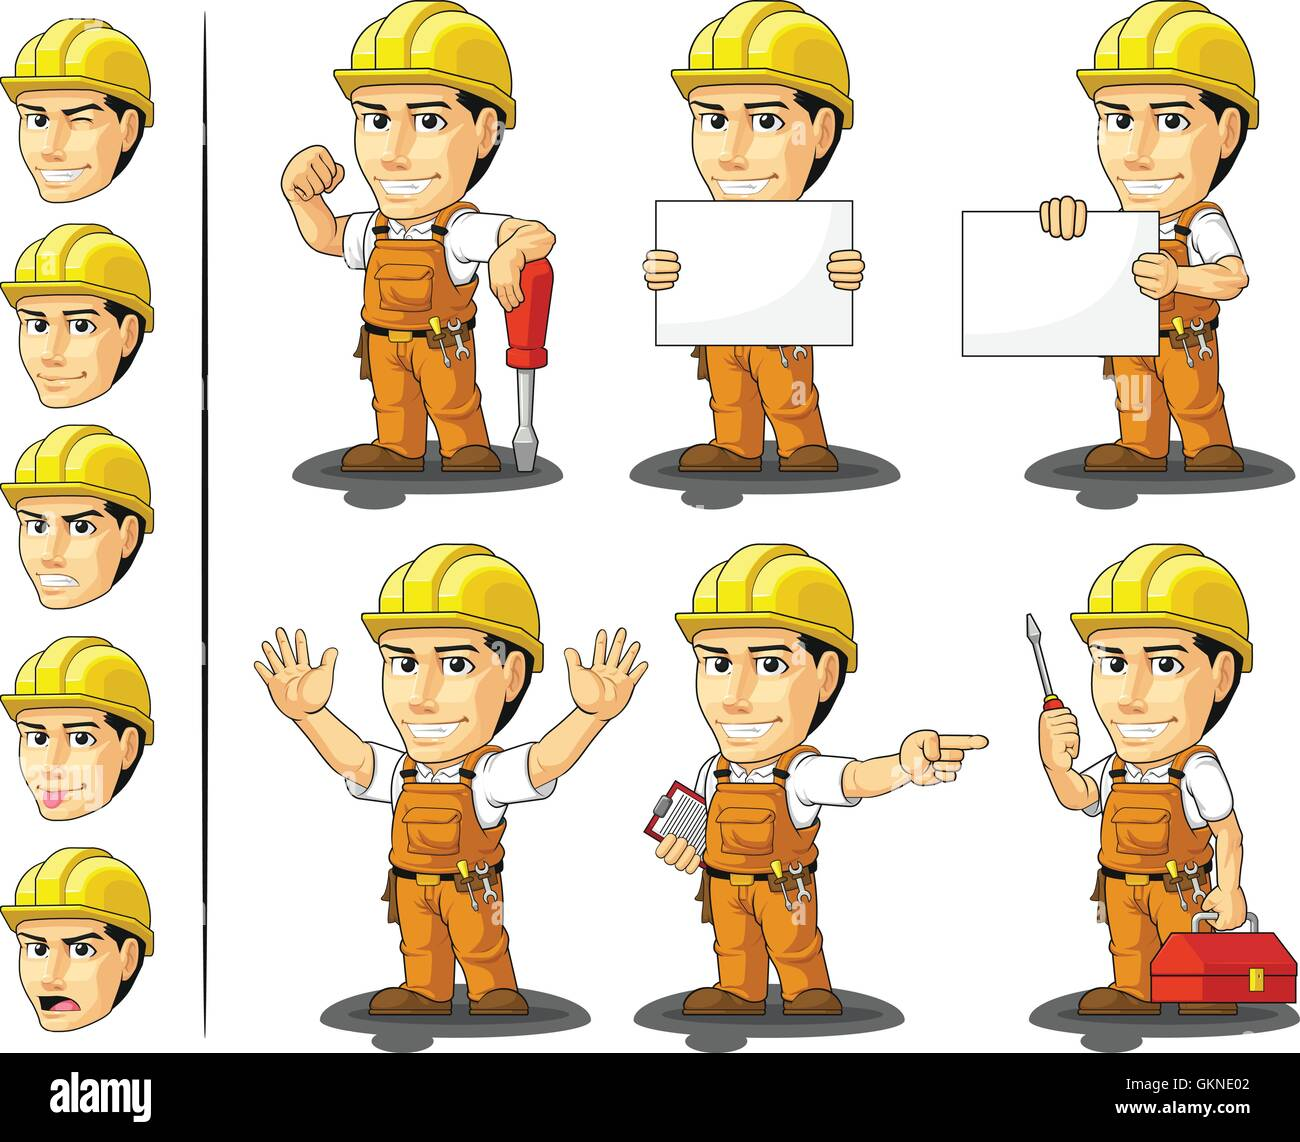 industrial construction worker mascot stock photos u0026 industrial